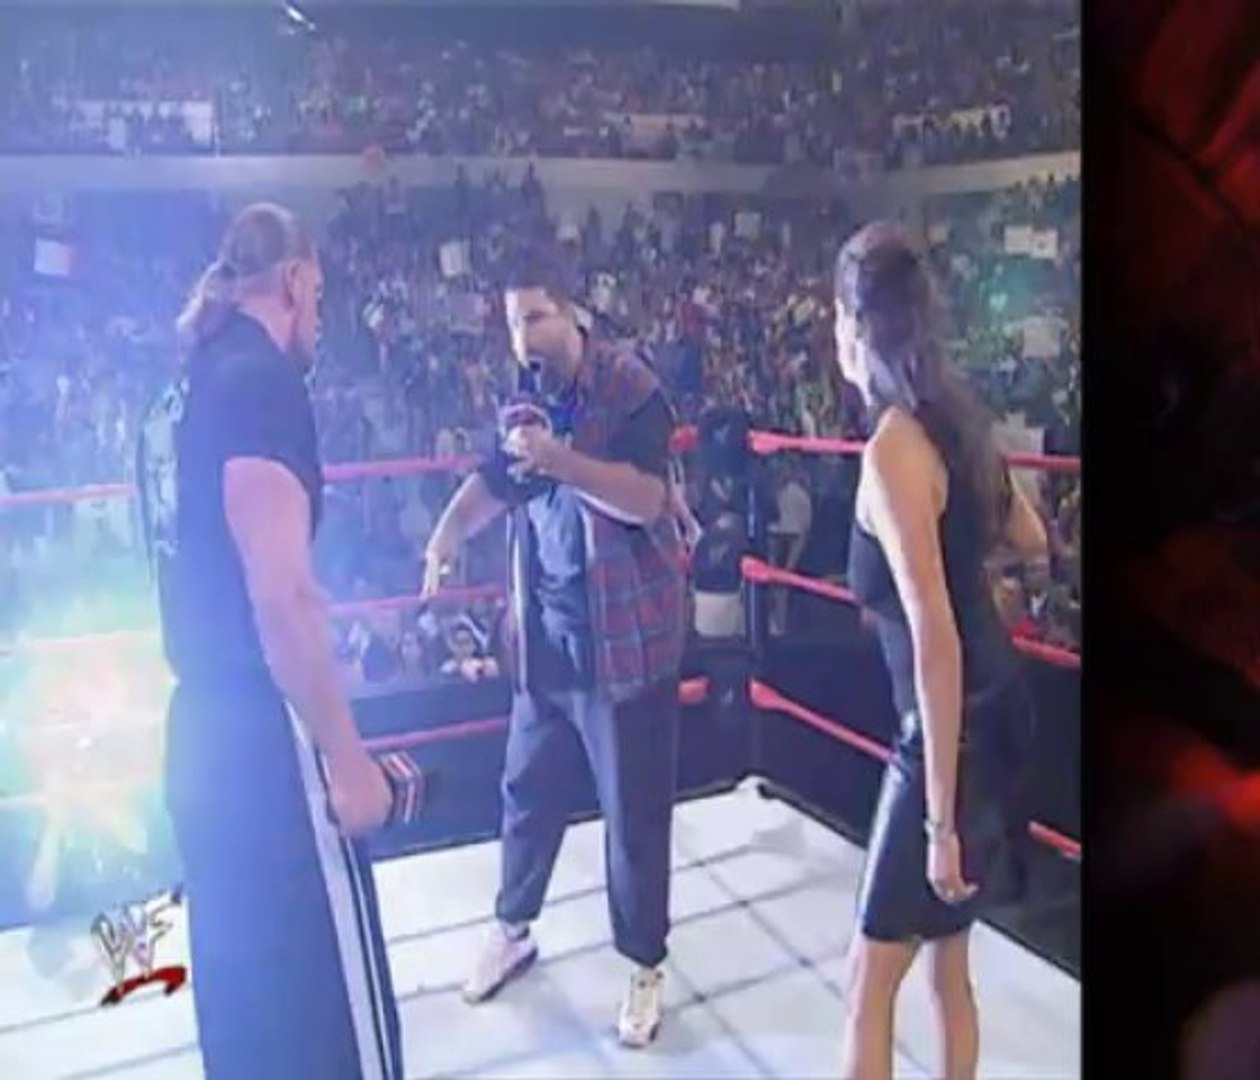 Mick Foley saying what we all feel on HHH